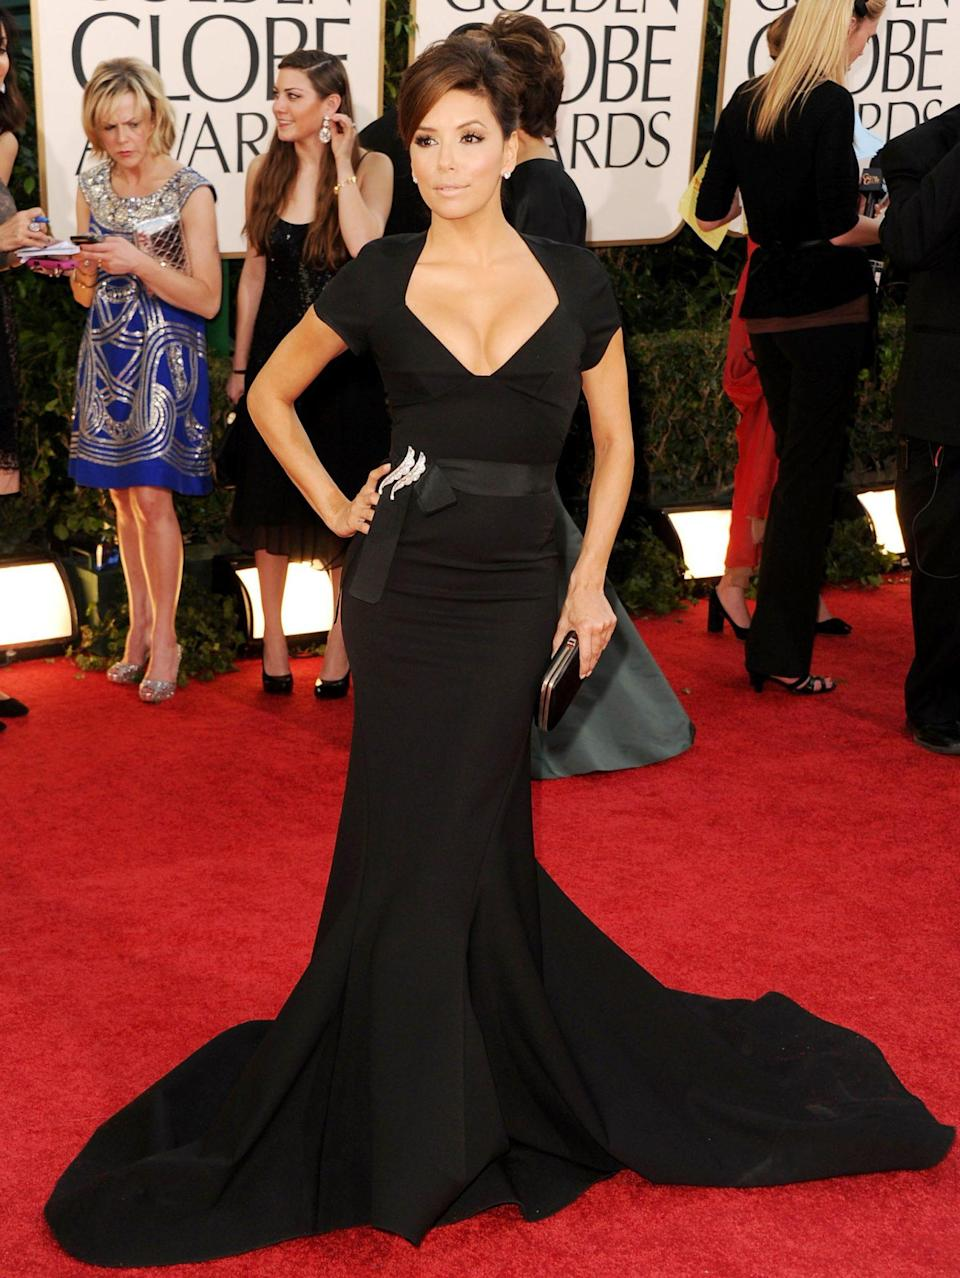 <p><em>Desperate Housewives </em>was winding down, but Eva Longoria was just ramping up her fashion on the red carpet.</p>